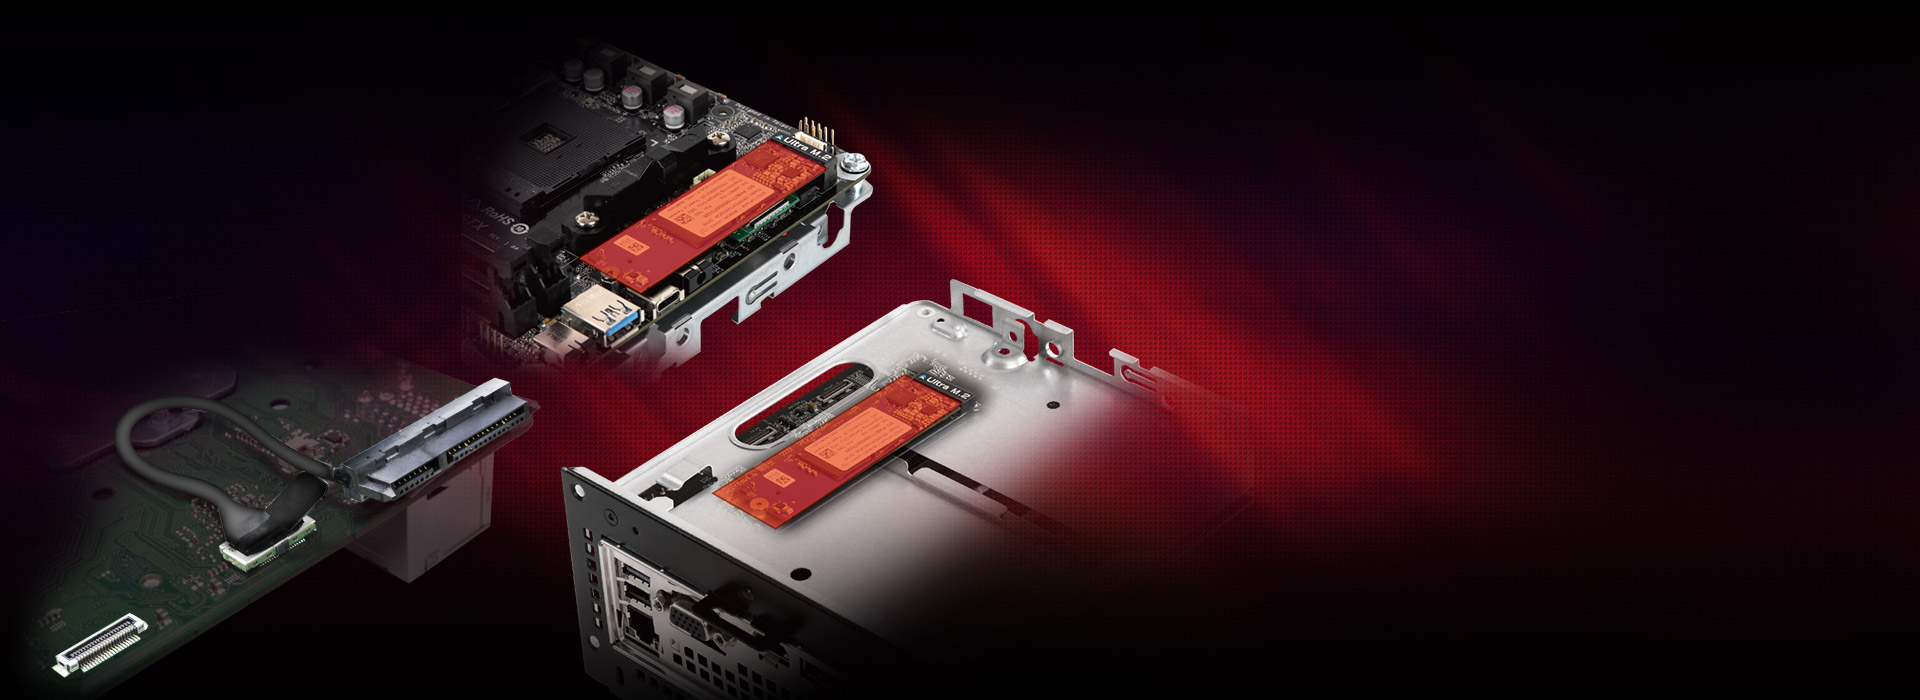 PCIE SSDs being installed on a dismantled A300 system